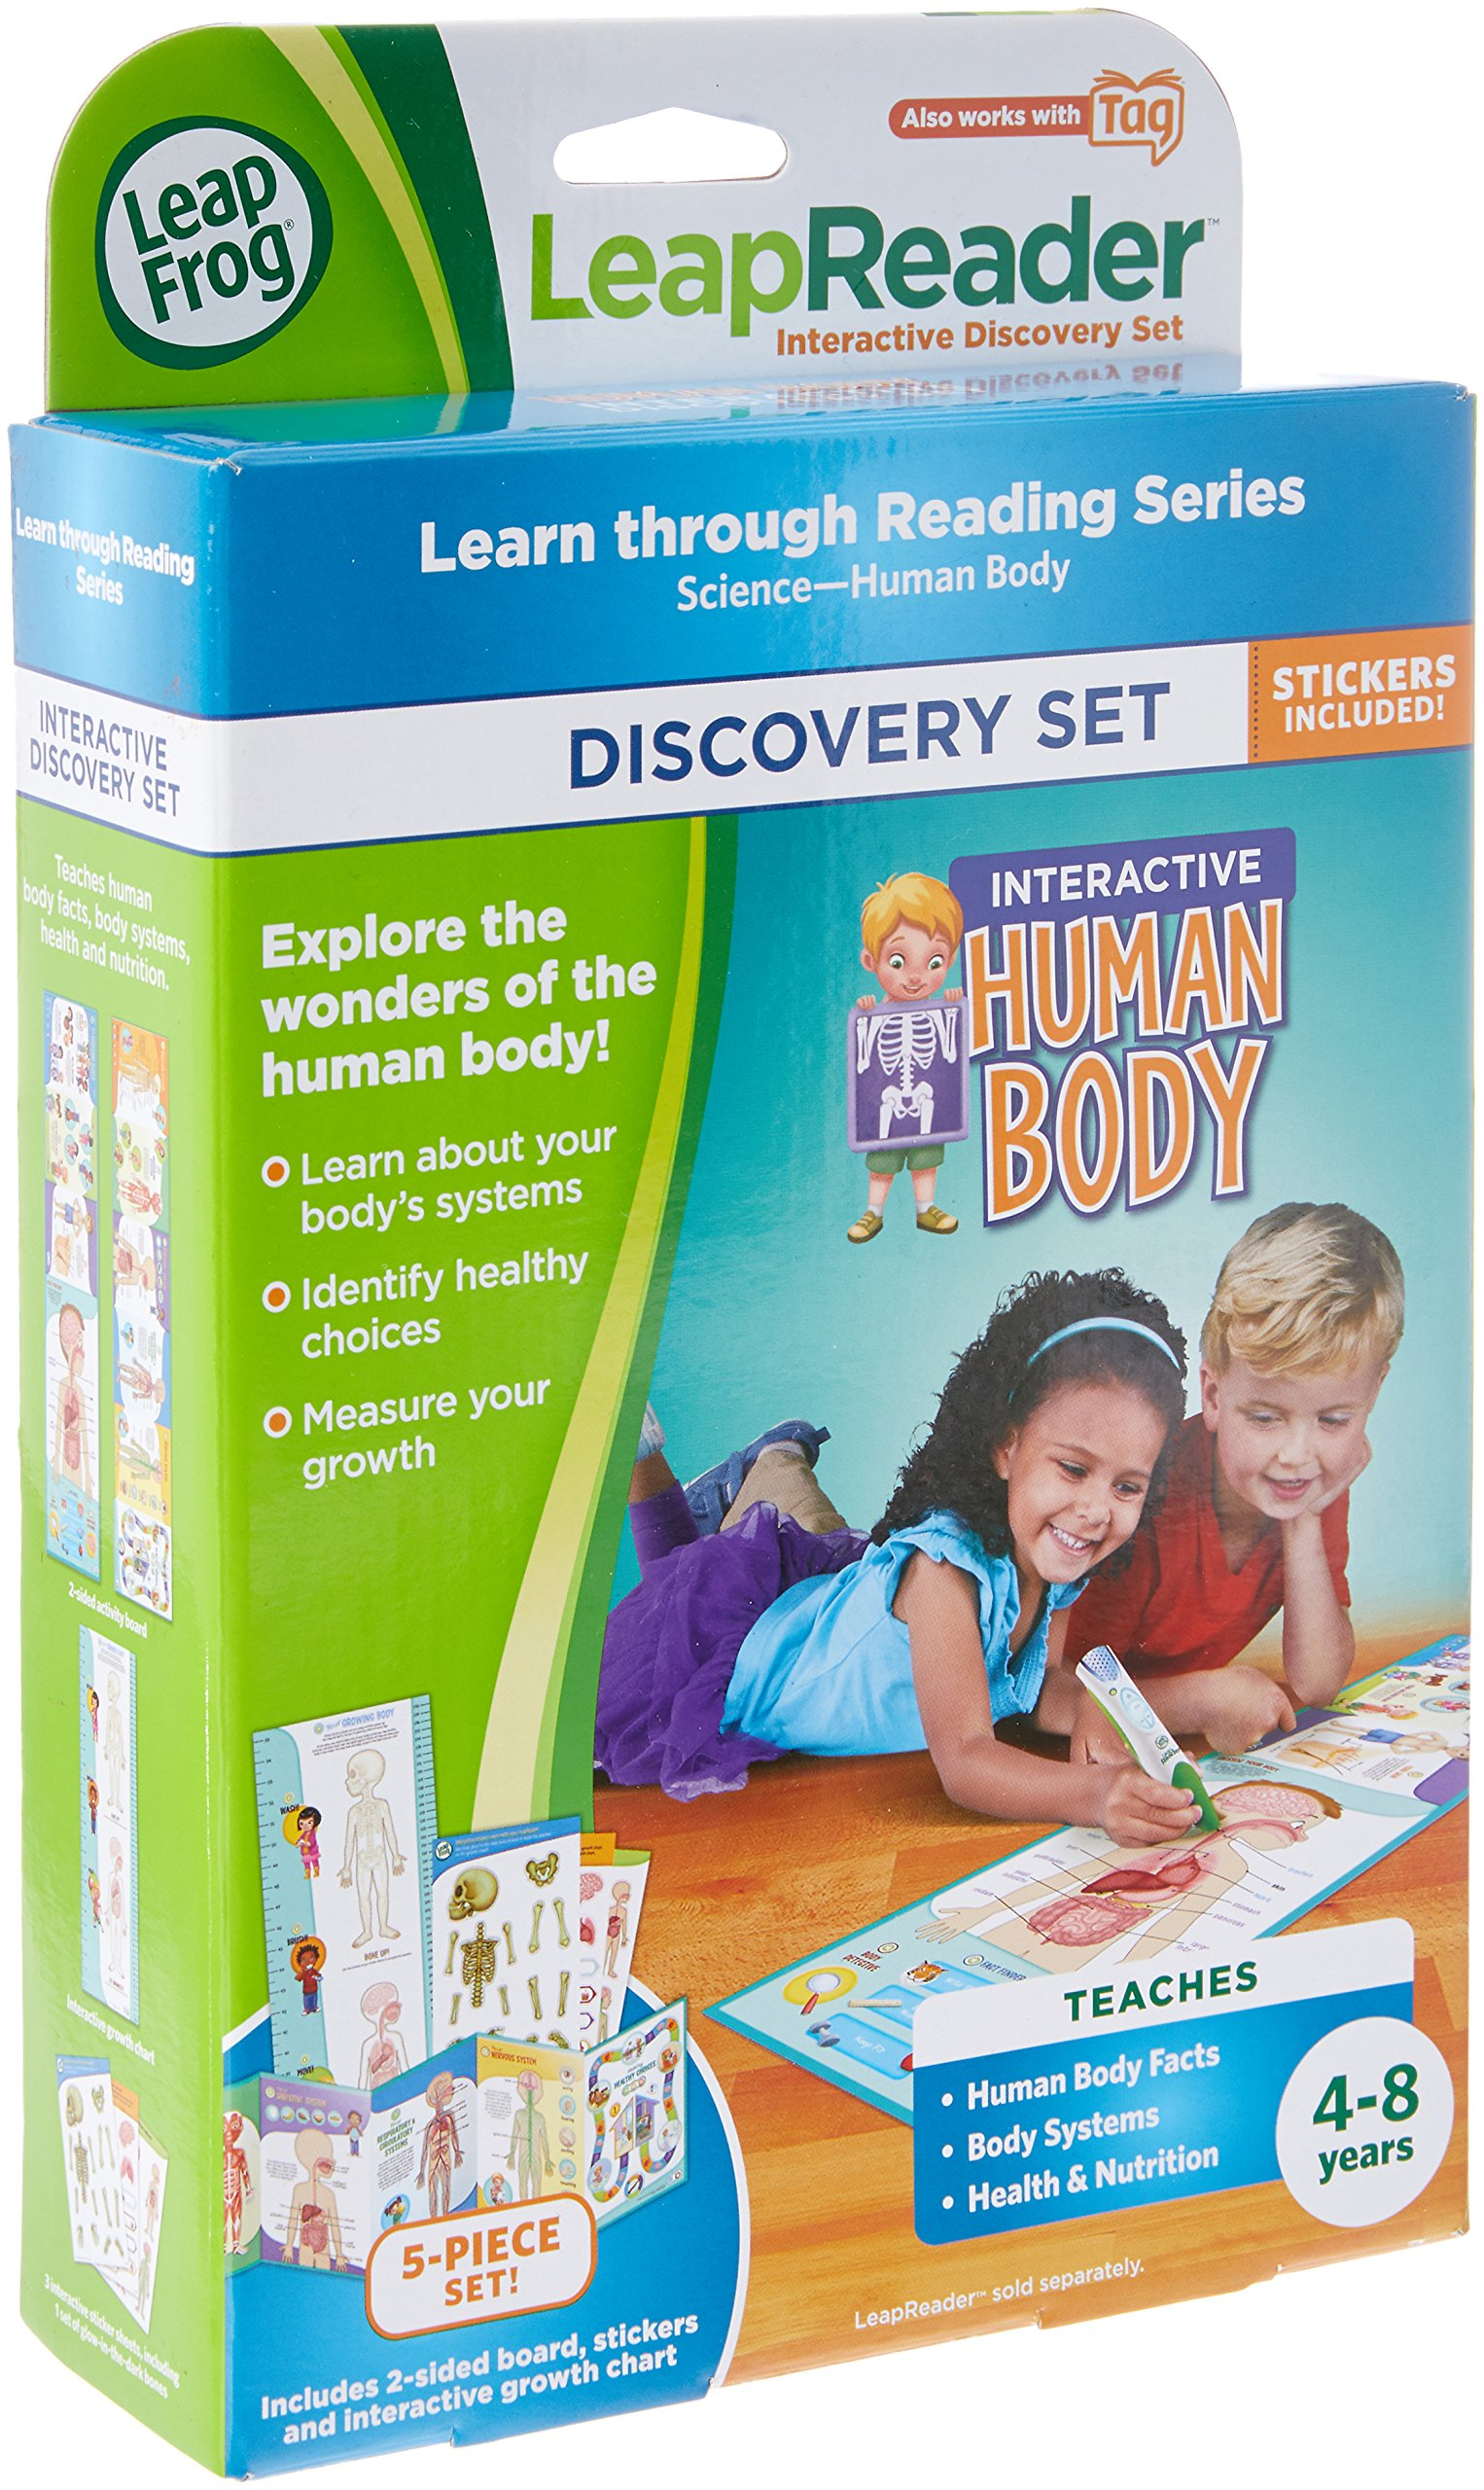 LeapFrog LeapReader Interactive Human Body Discovery Set (works with Tag) by LeapFrog